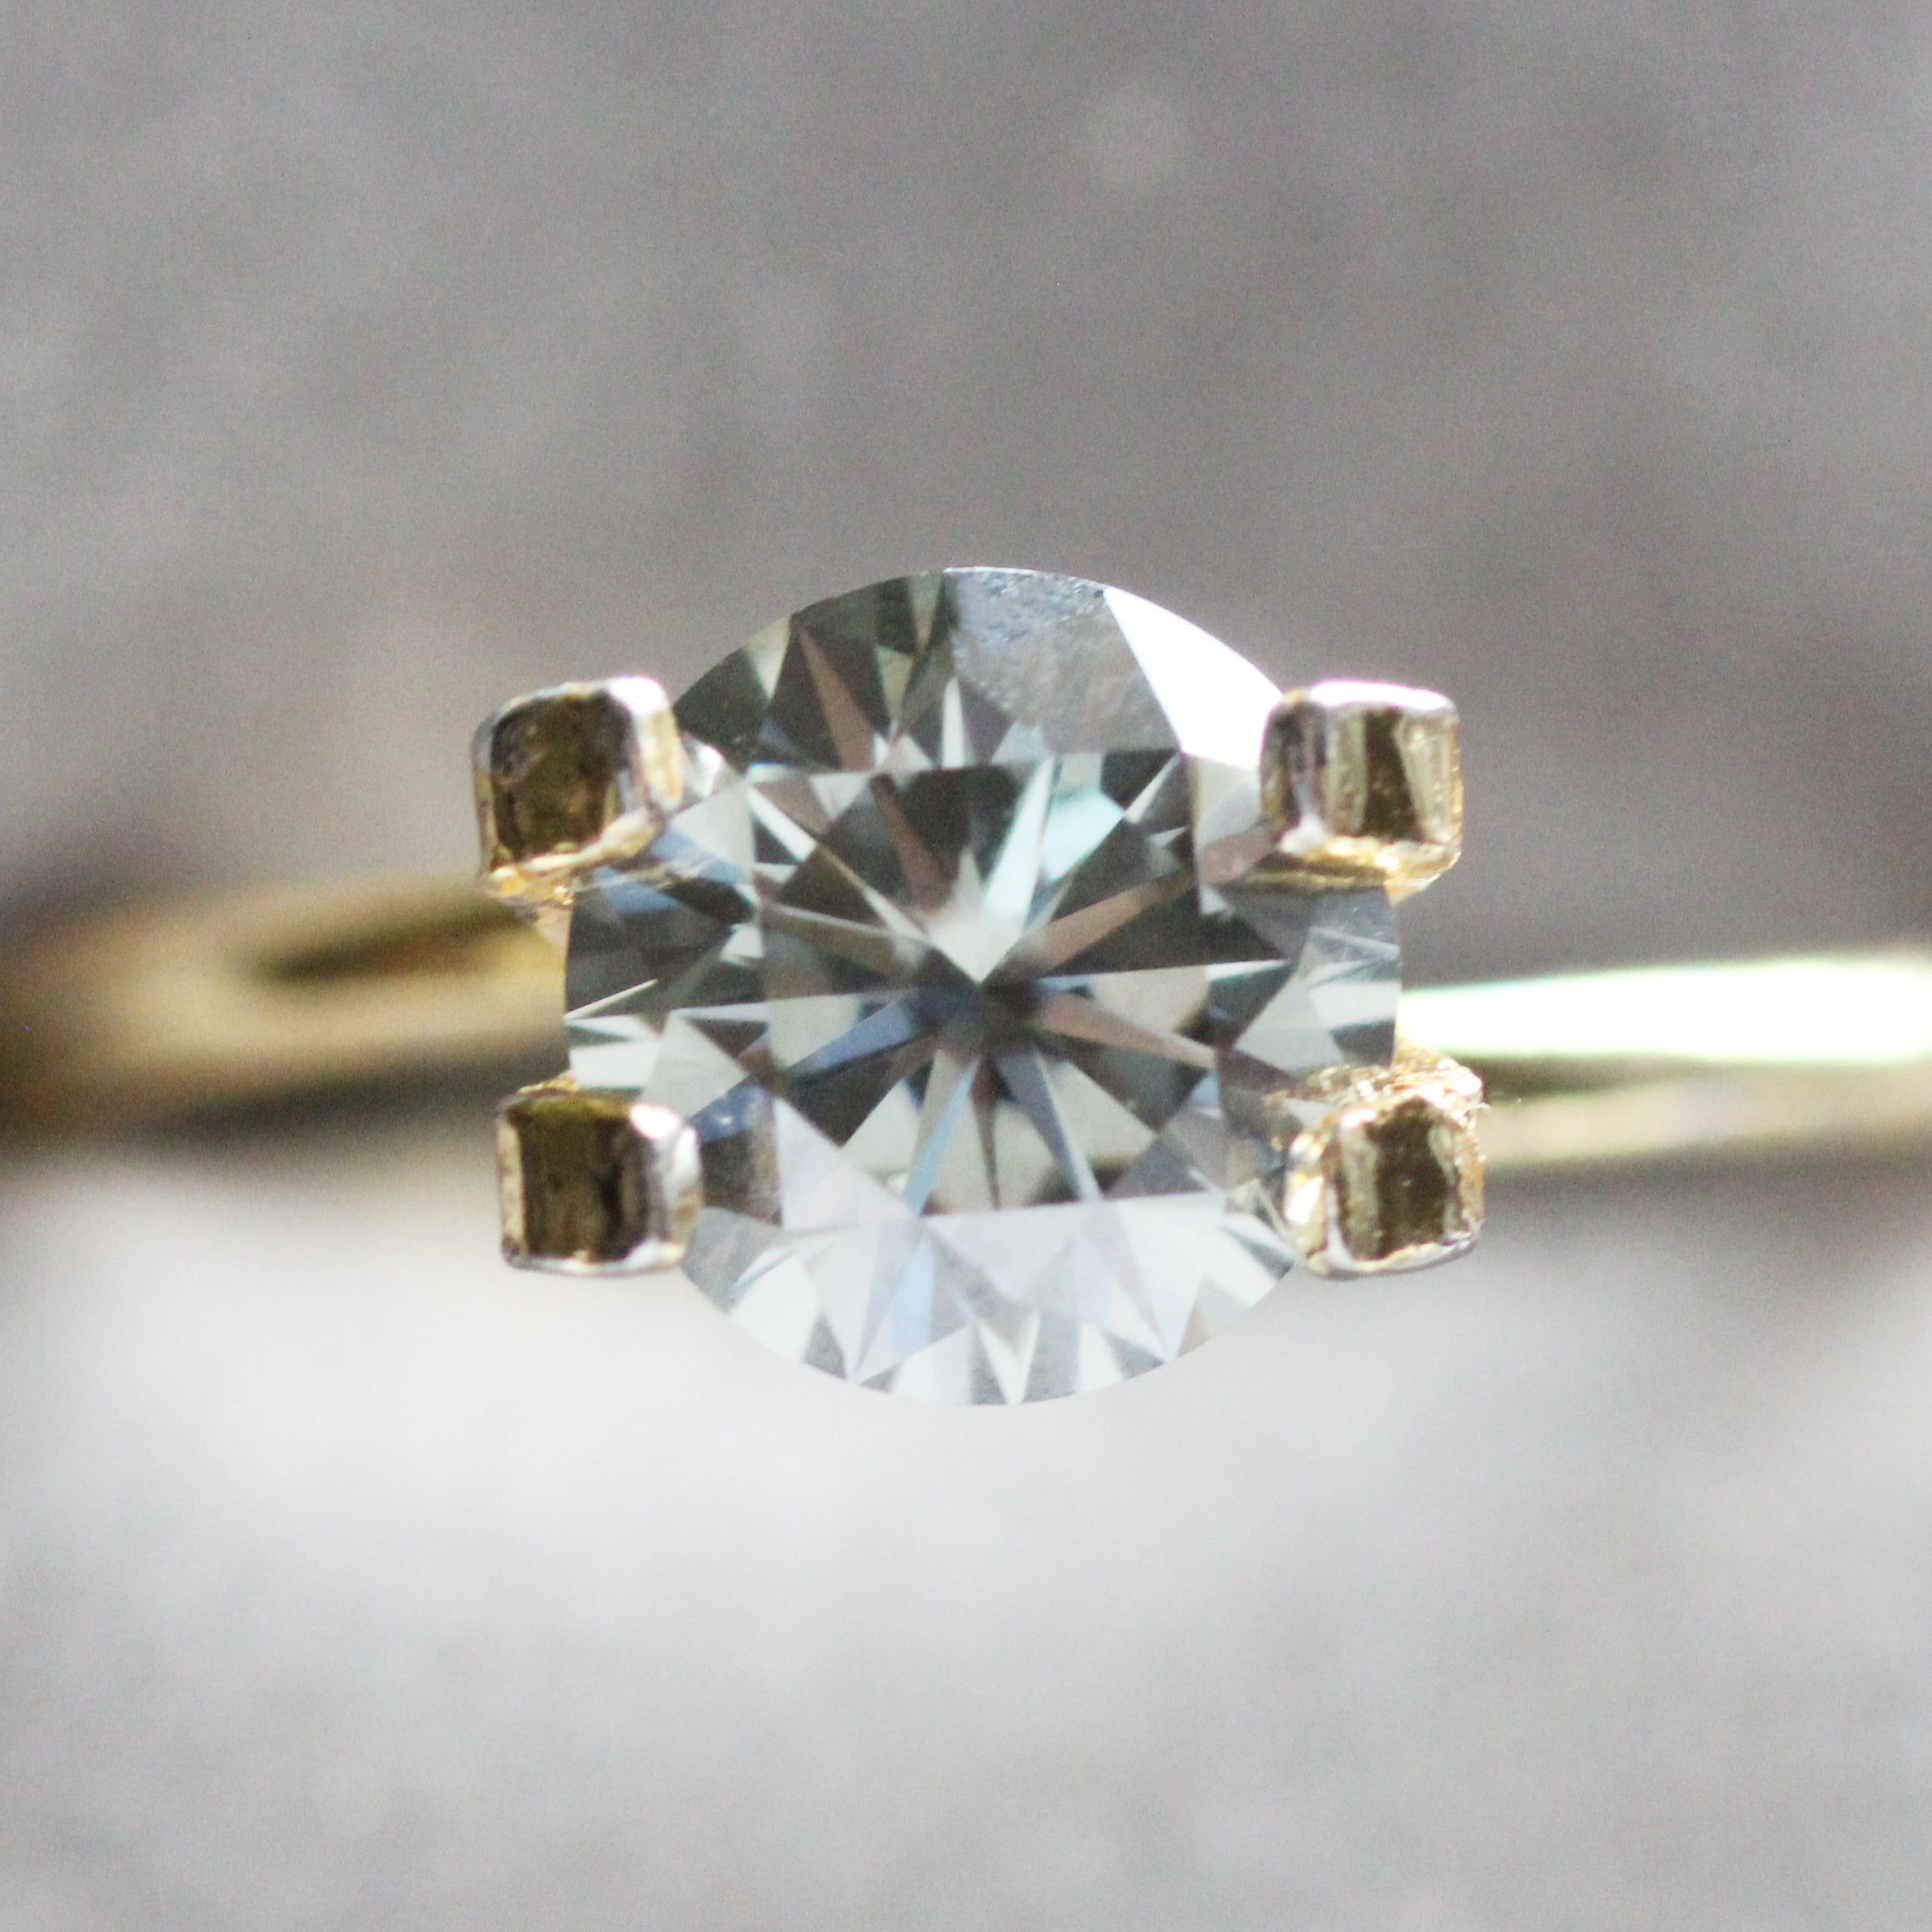 6.5mm 1 carat Clear Gray Moissanite - Inventory Code GBM1 - Midwinter Co. Alternative Bridal Rings and Modern Fine Jewelry